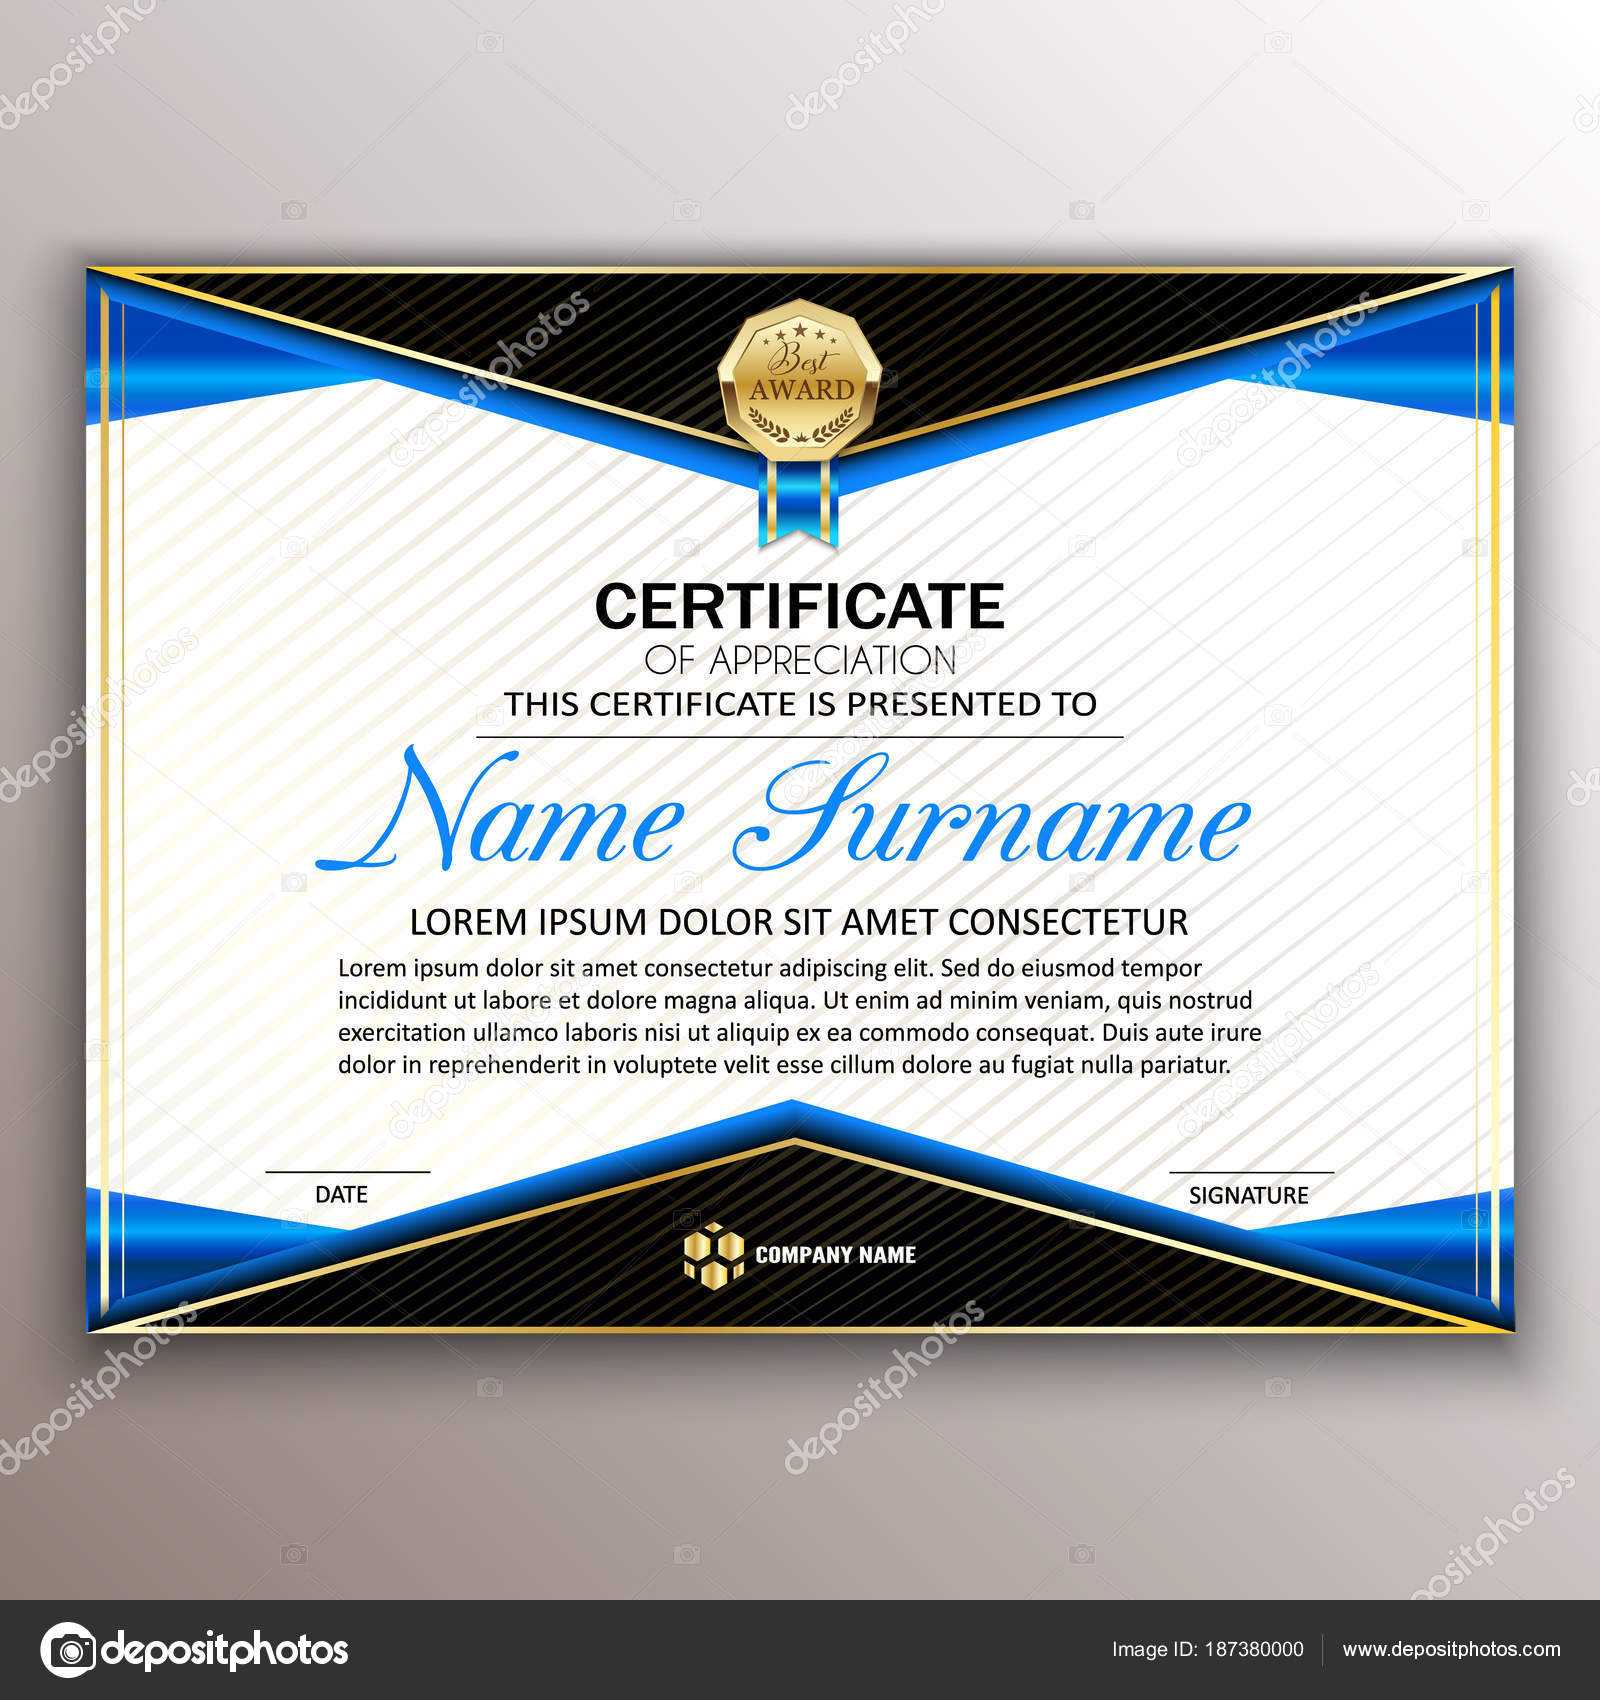 Beautiful Certificate Template Design With Best Award Symbol intended for Beautiful Certificate Templates